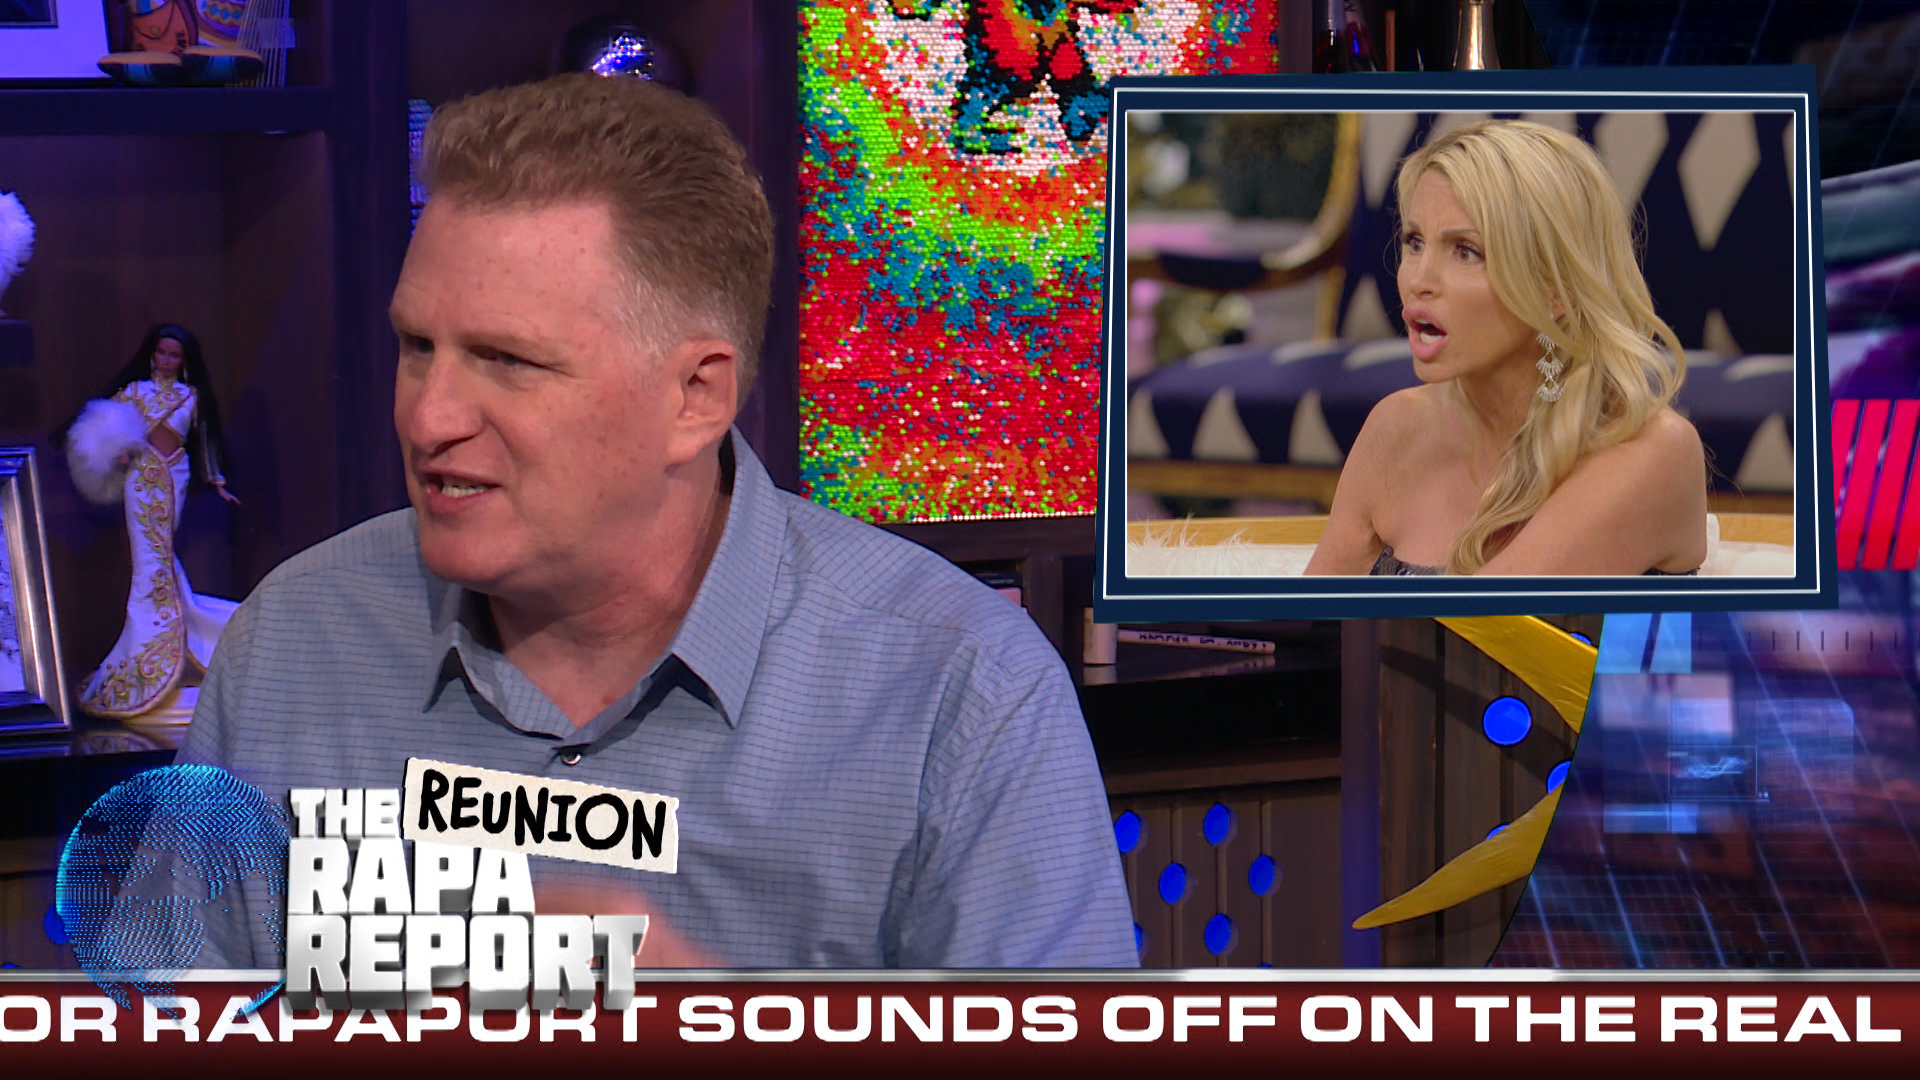 Michael Rapaport on the #RHOBH & #RHONY Reunions